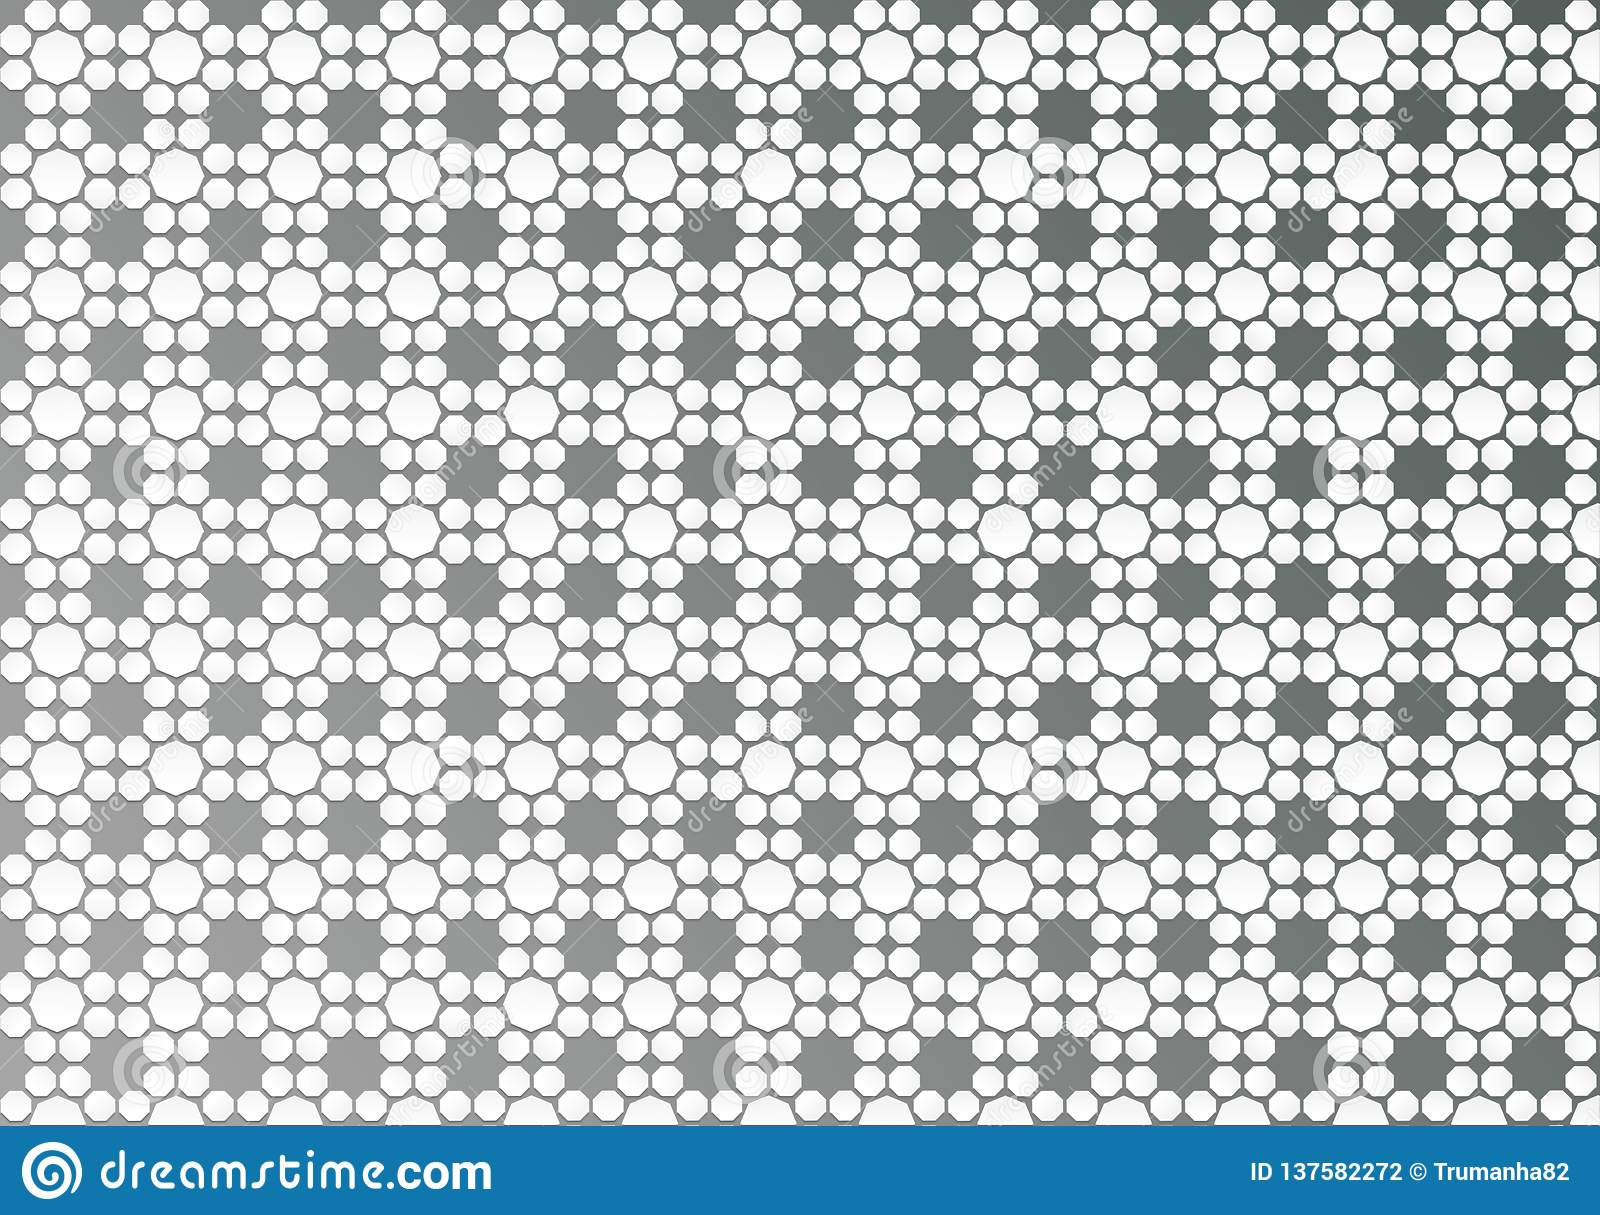 Abstract White Geometric Floral Texture in Grey Background